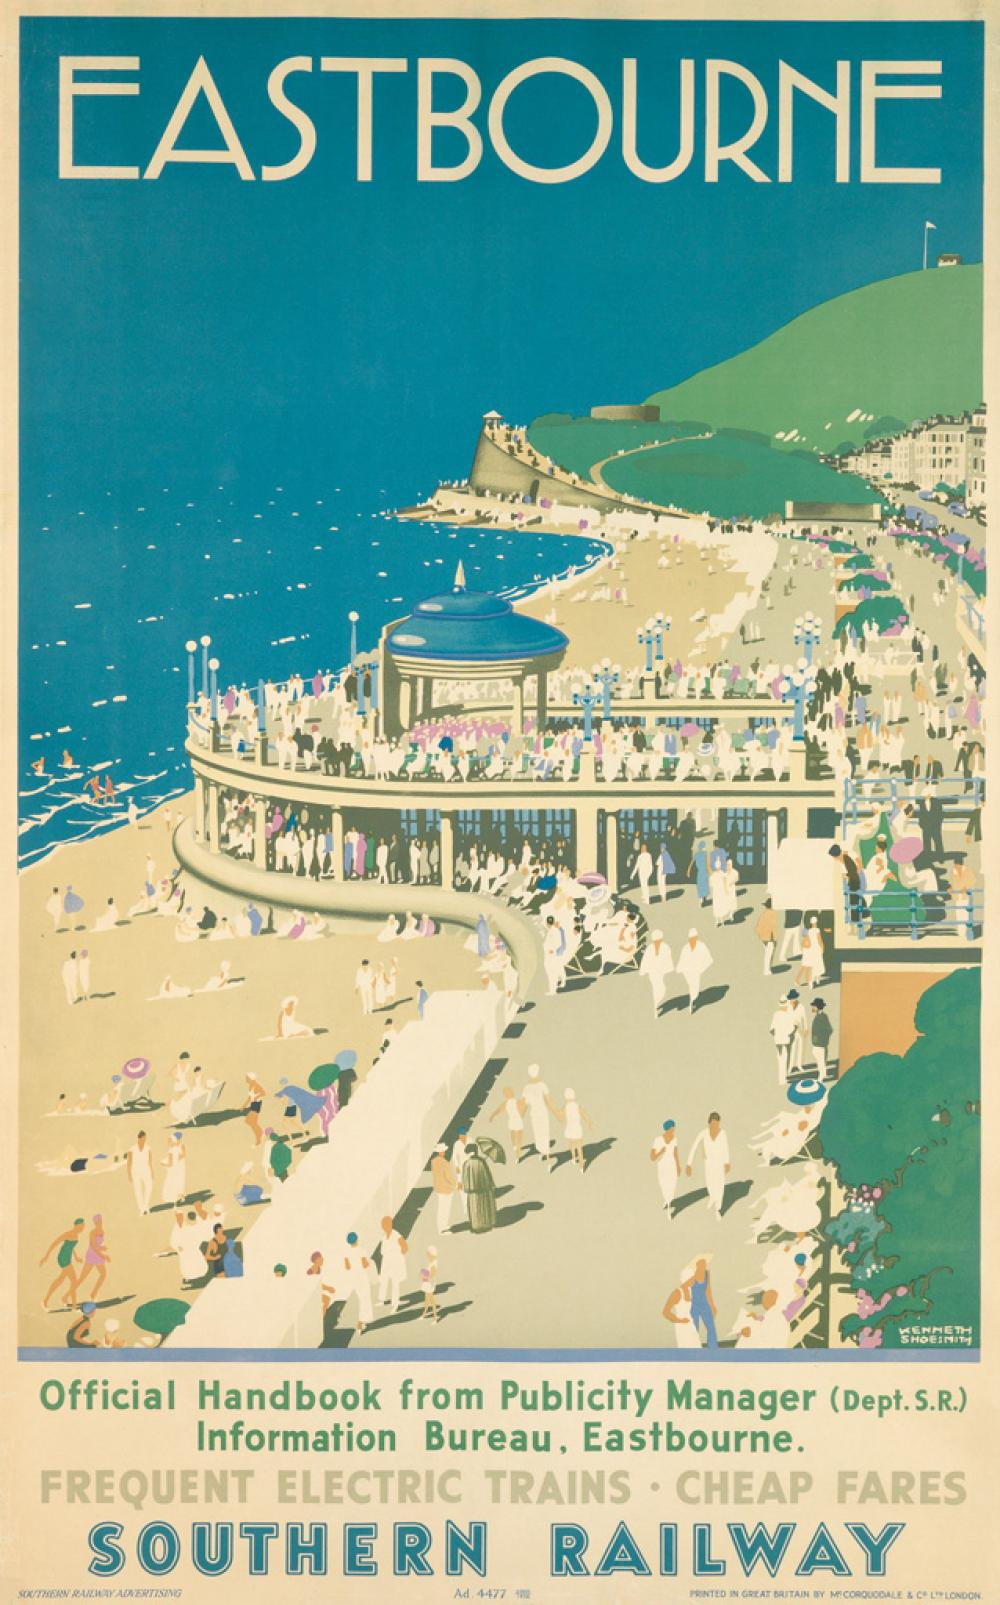 KENNETH SHOESMITH (1890-1939). EASTBOURNE / SOUTHERN RAILWAY. 1938. 39x24 inches, 101x63 cm. McCorquodale & Co., Ltd., London.